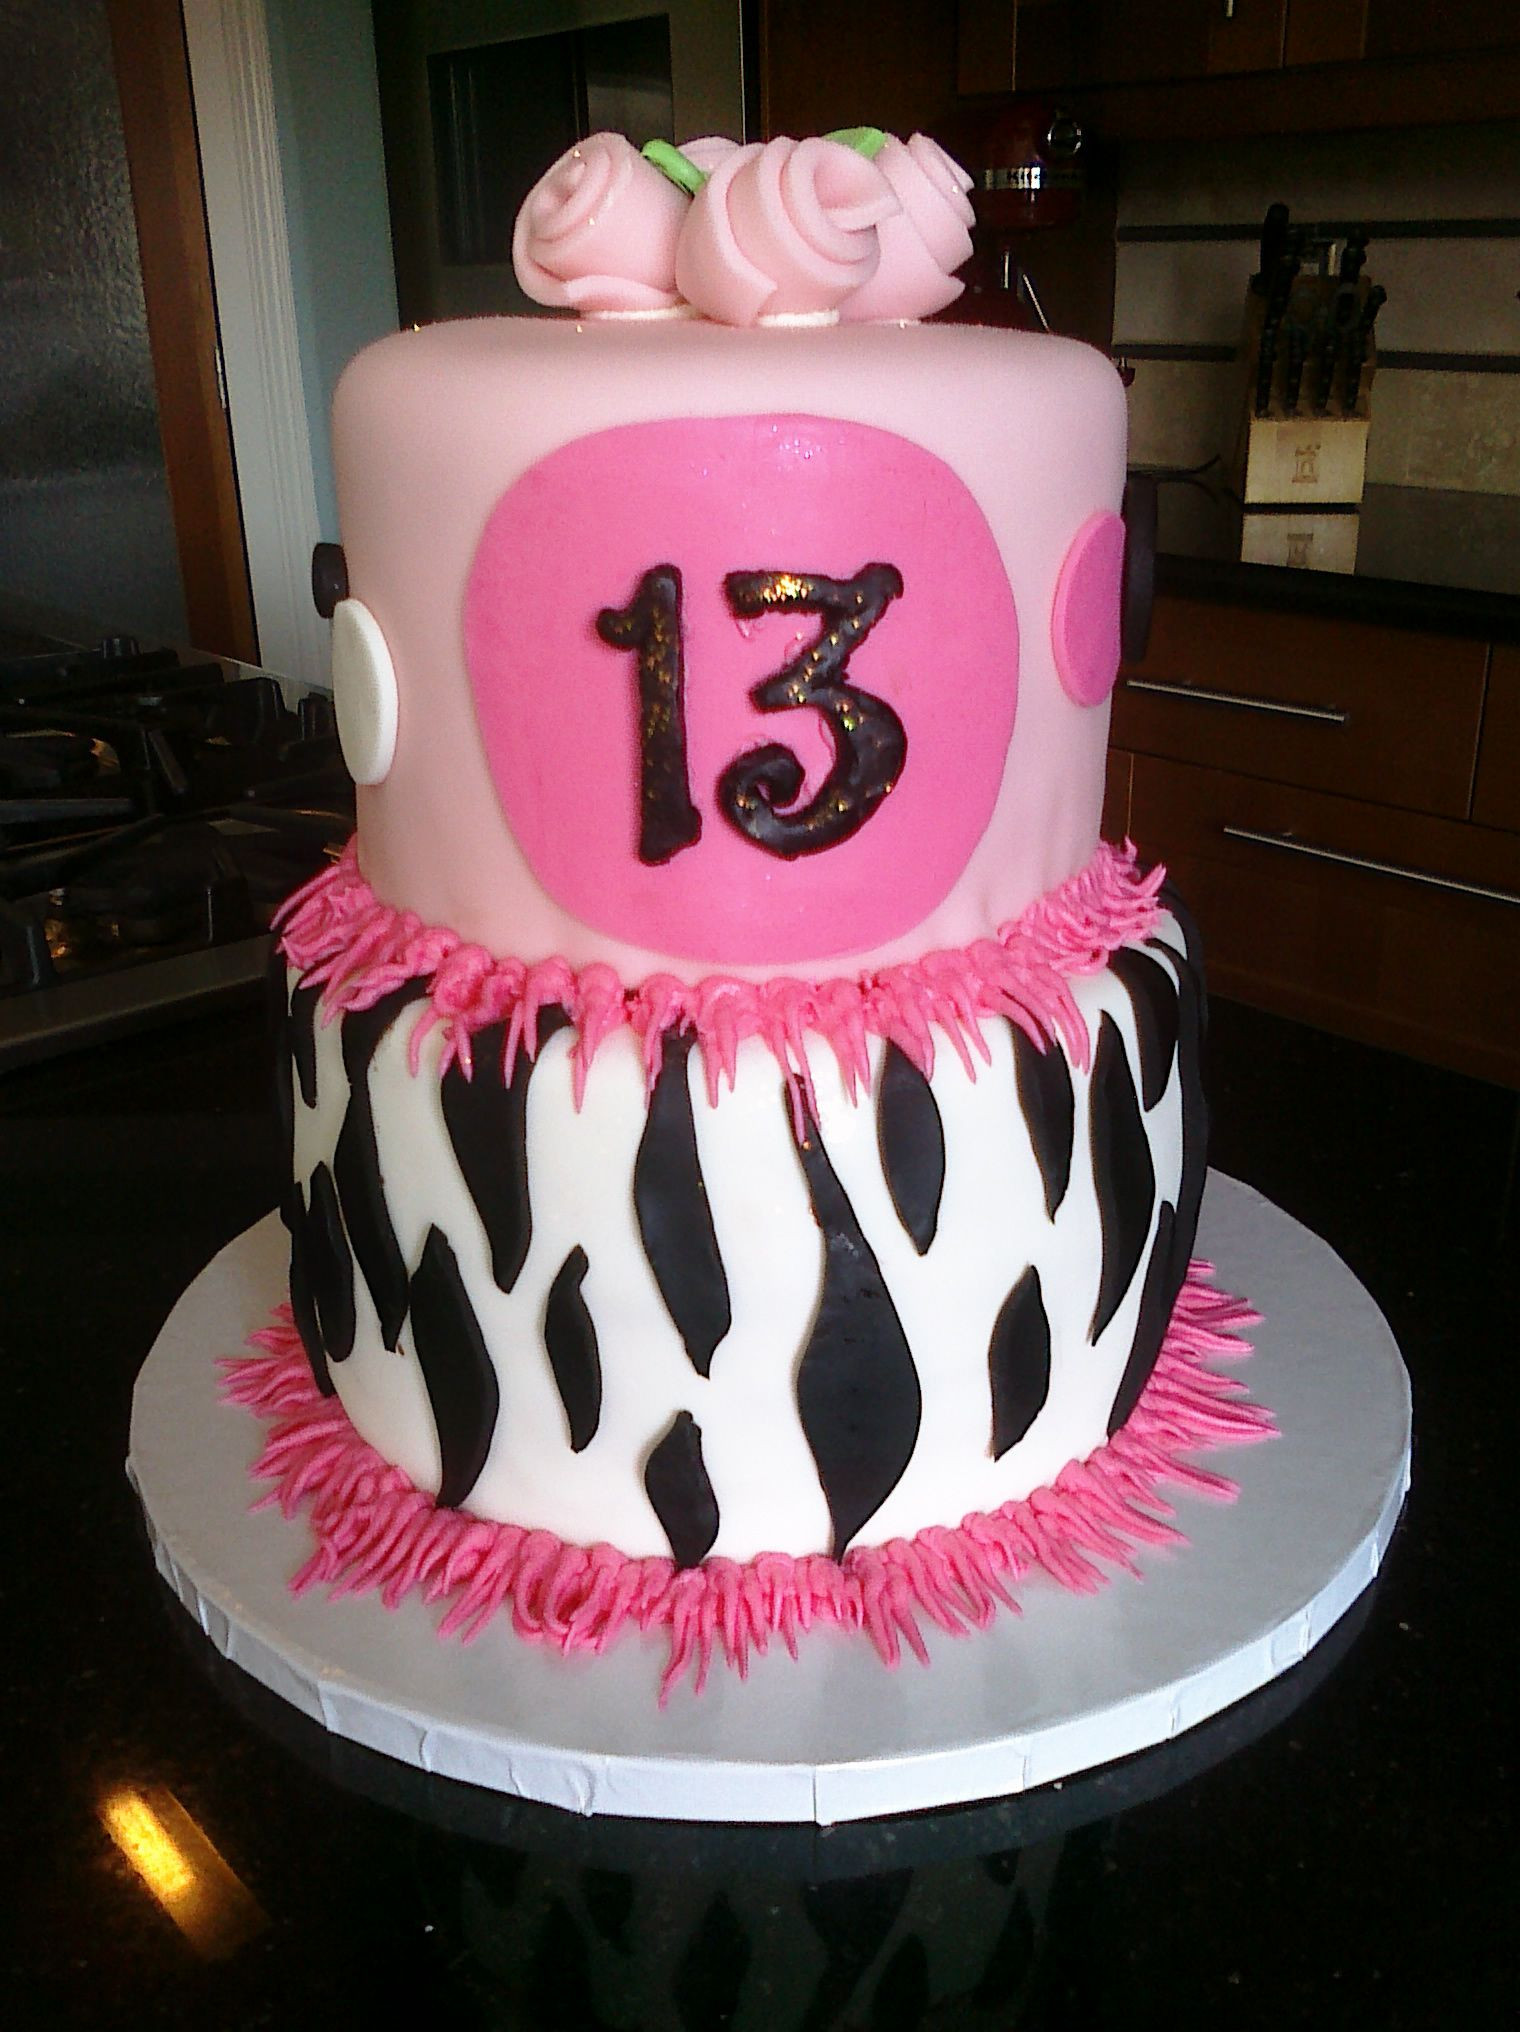 Best ideas about 13 Birthday Cake . Save or Pin Happy 13th Birthday Cake Food and drinks Now.